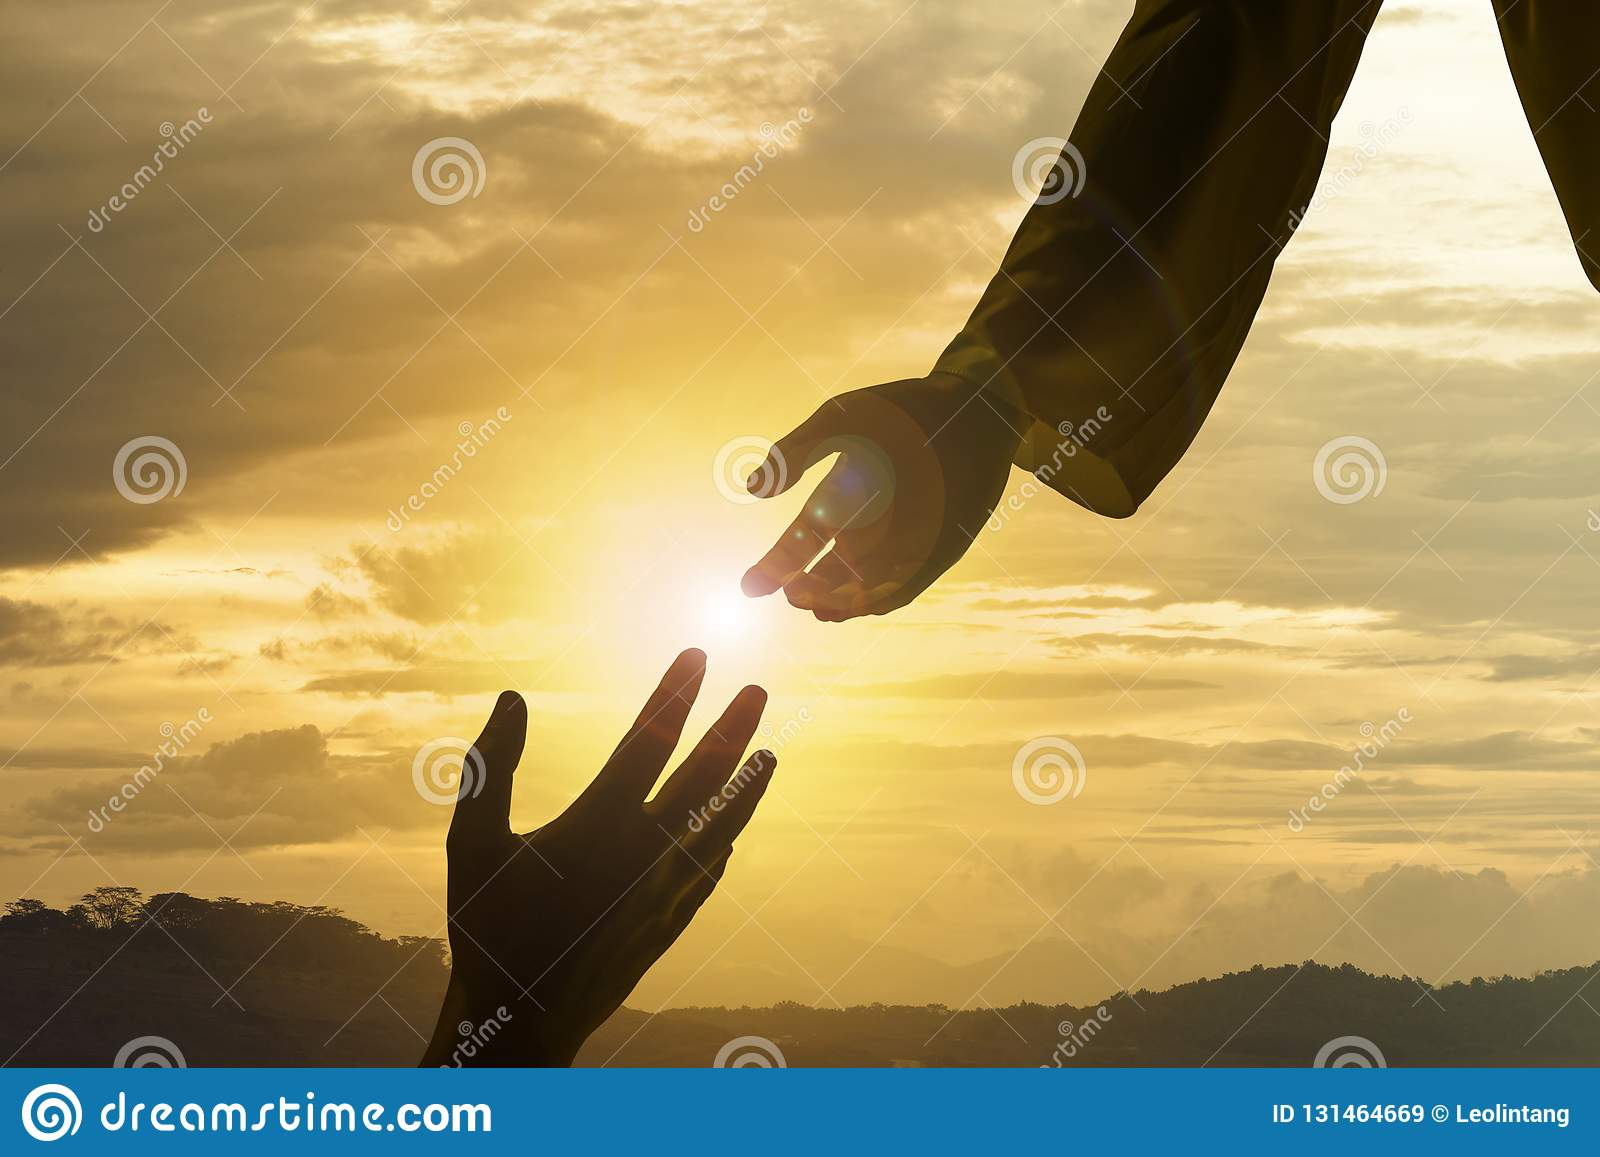 Silhouette of Jesus giving helping hand